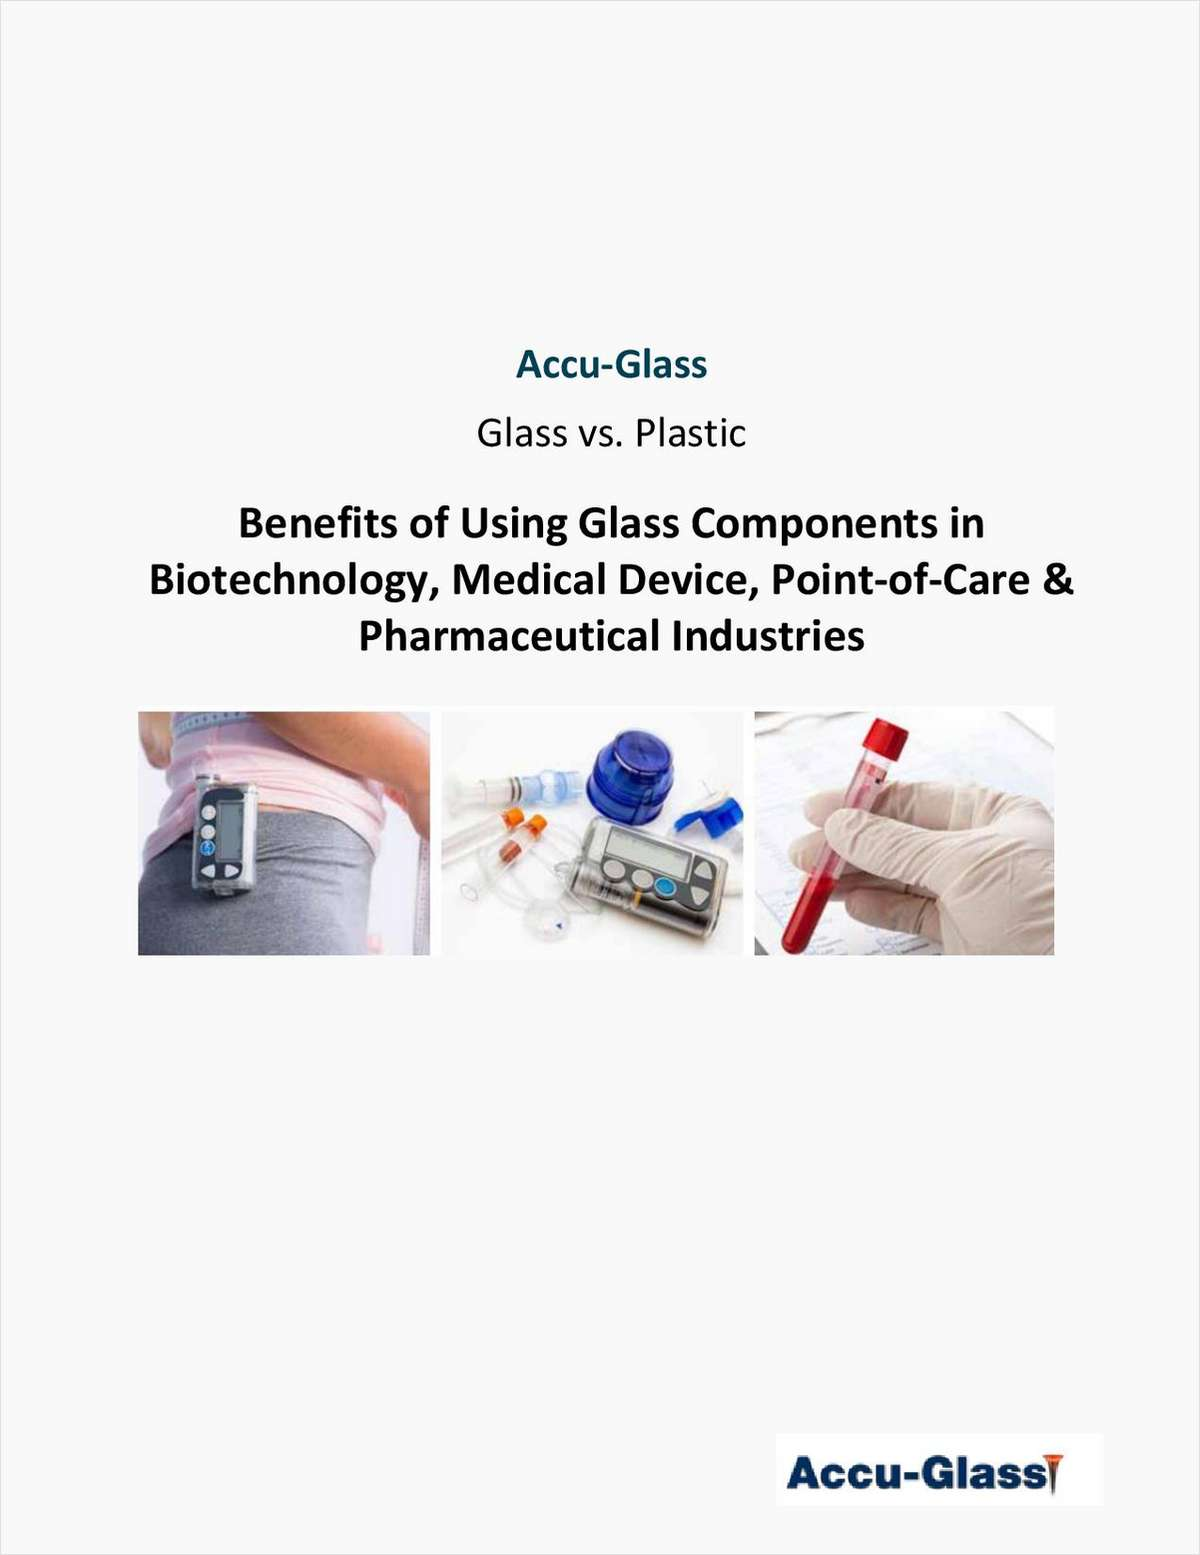 Glass vs. Plastic: Benefits of Using Glass Components in Biotechnology, Medical Device, Point-of-Care & Pharmaceutical Industries